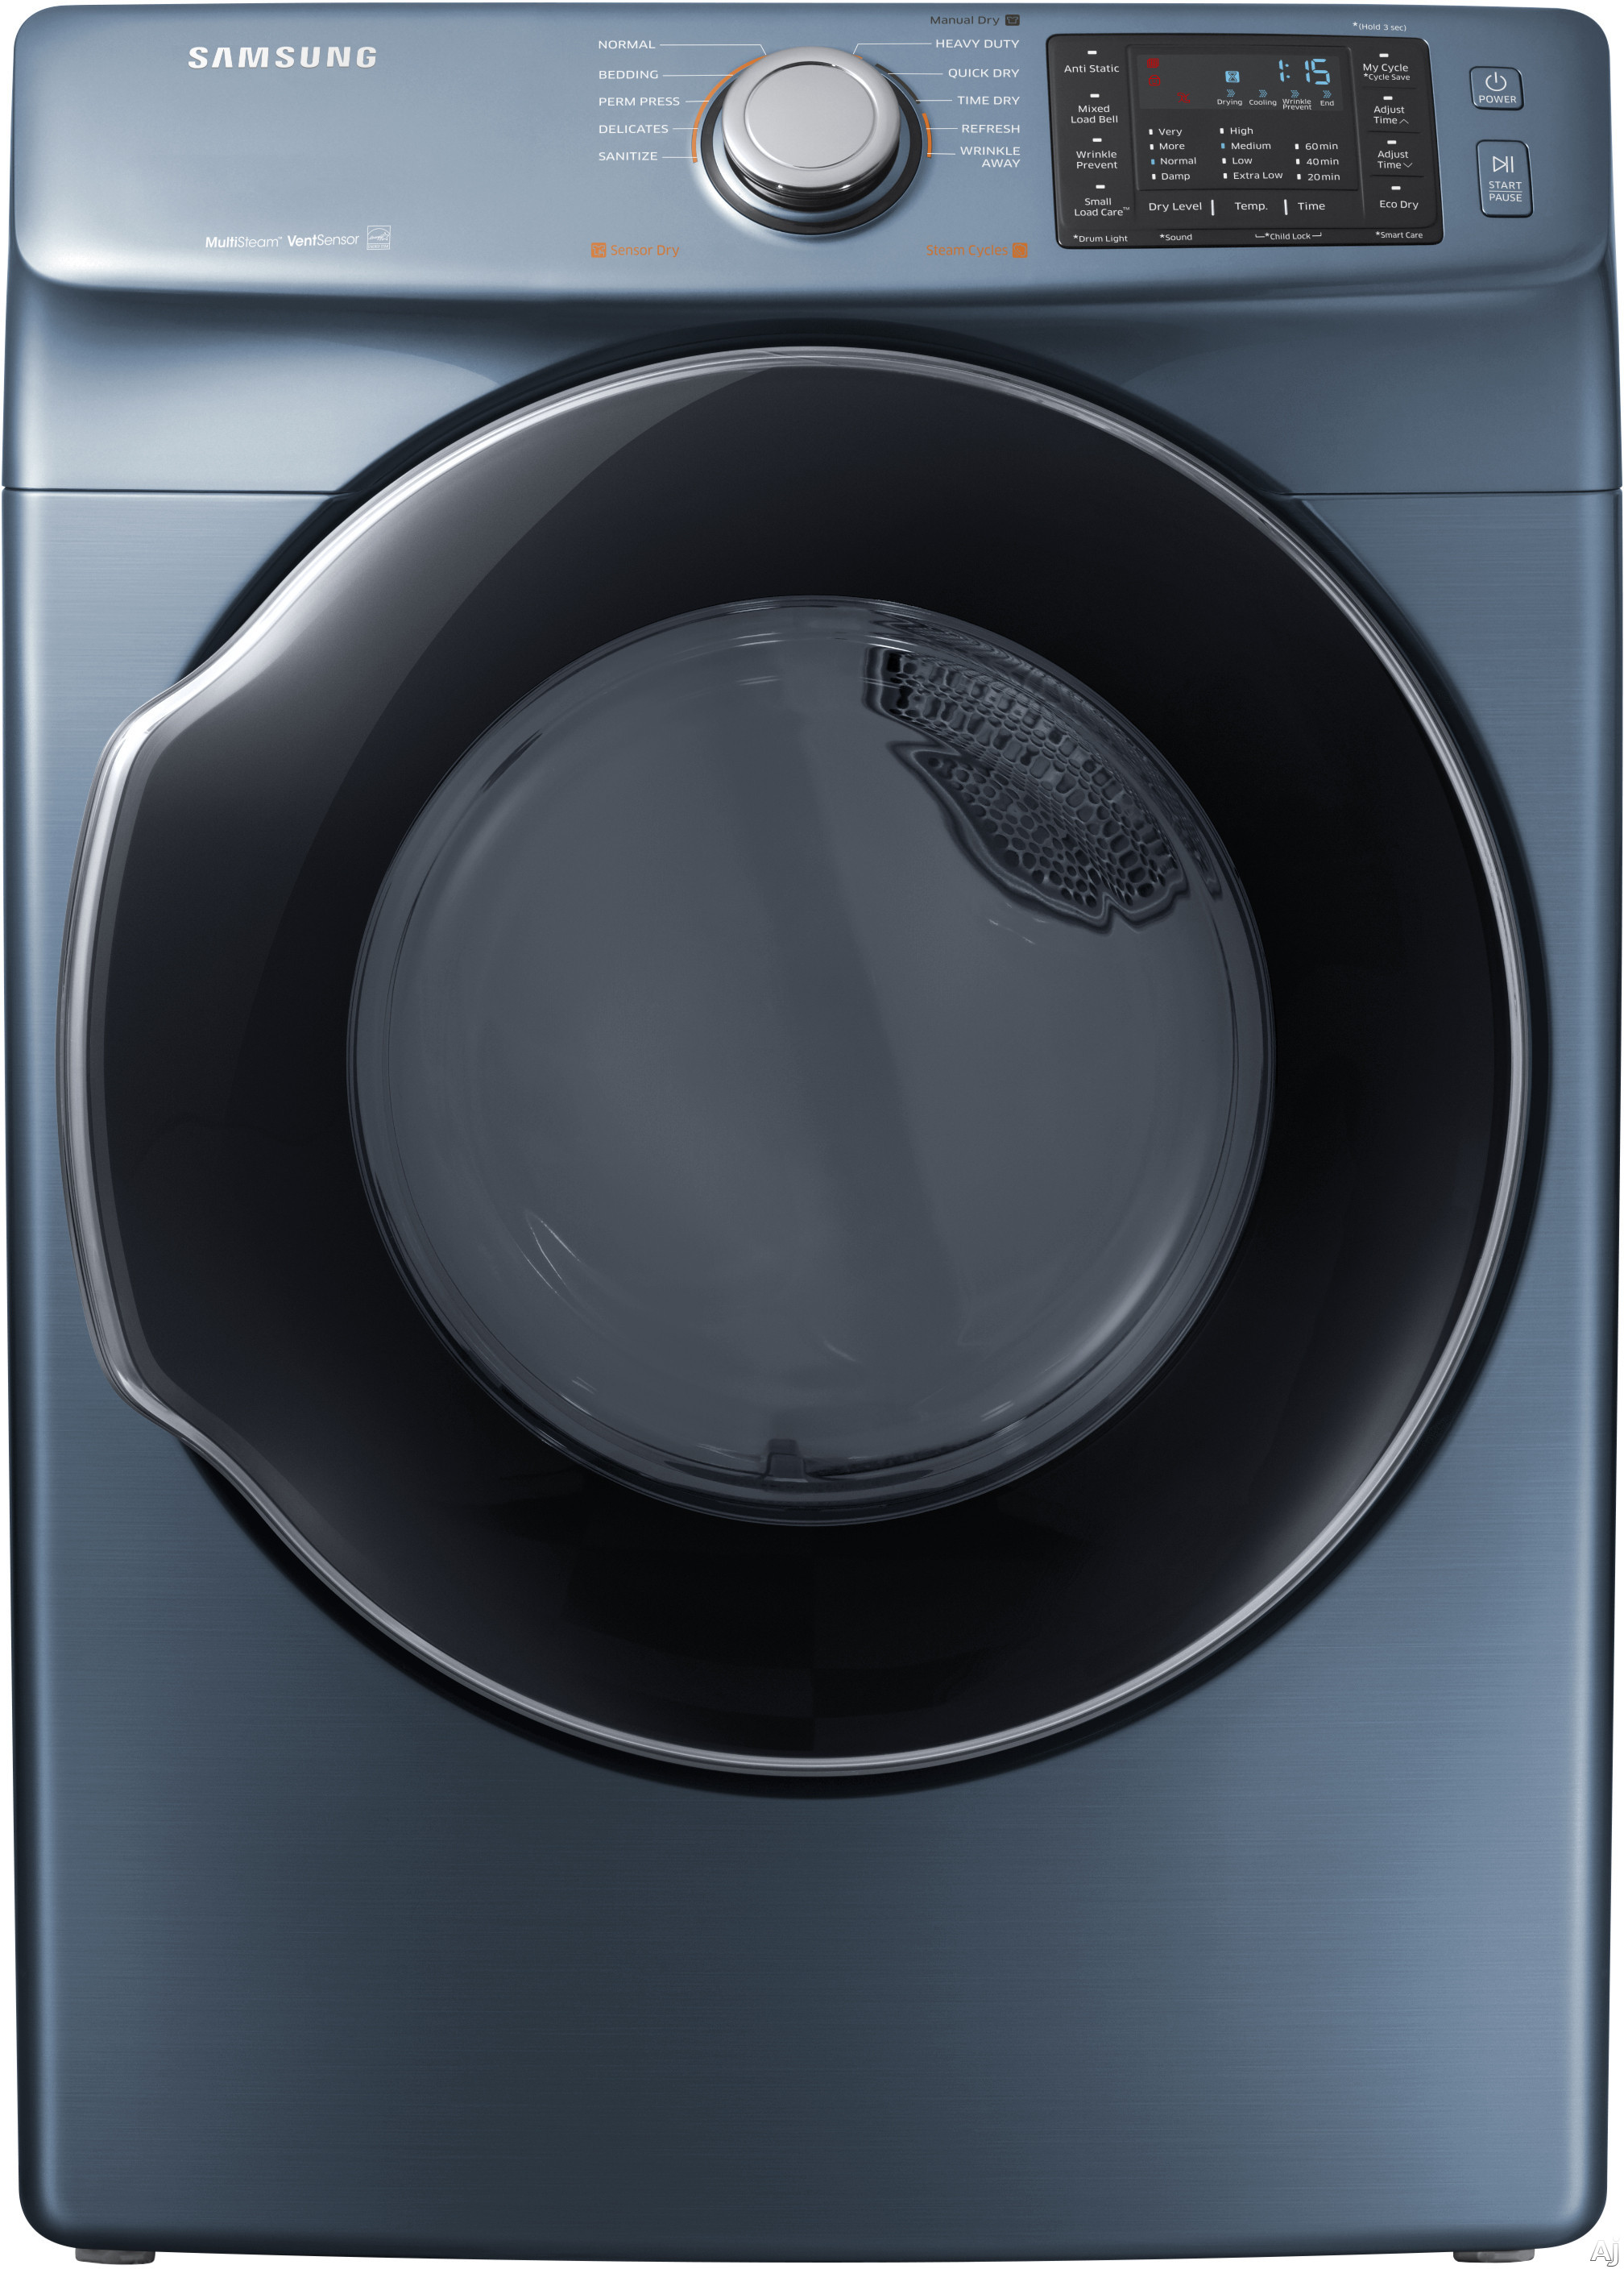 Image of Samsung DVE45M5500Z 27 Inch Electric Dryer with Multi-Steam™ Technology, Wrinkle Prevent Option, Sensor Dry, 10 Dry Cycles, My Cycle Options, Anti-Static, Smart Care, 4-Way Venting, Reversible Door, Eco Dry, ENERGY STAR® and 7.5 cu. ft. Capacity: Azure